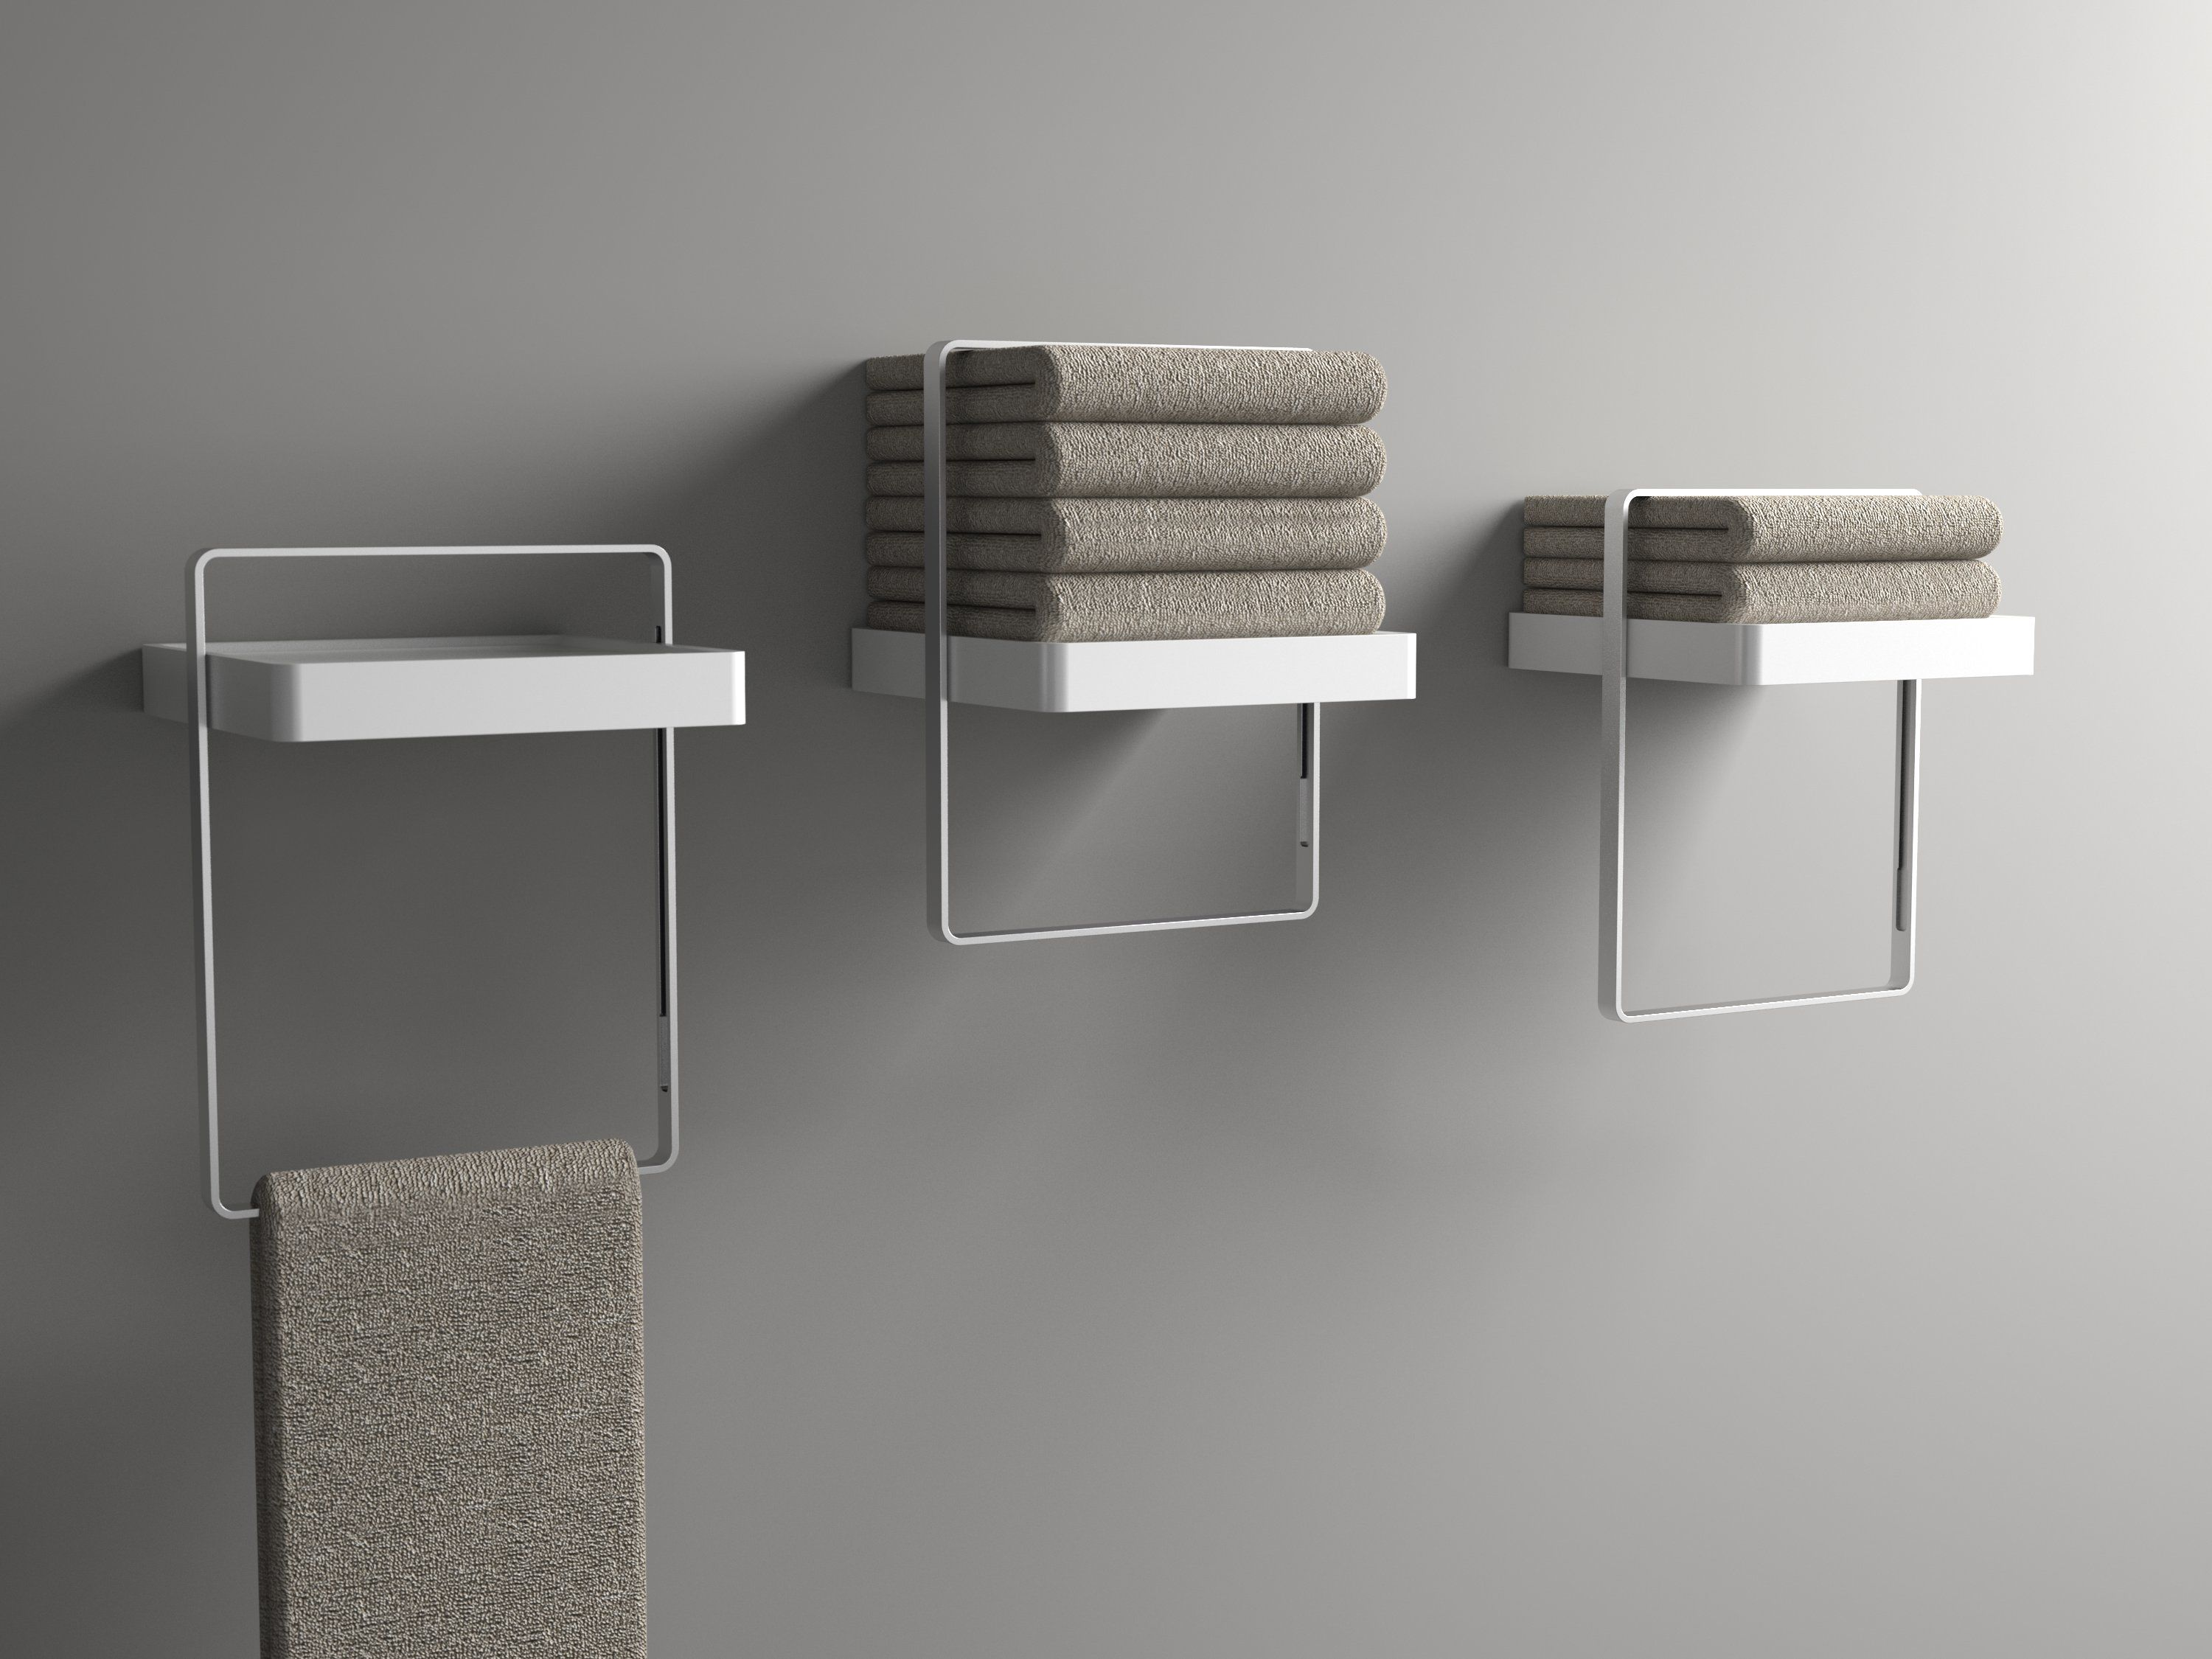 Towel Stands Towel Shelves Home Depot Bathroom Shelves With